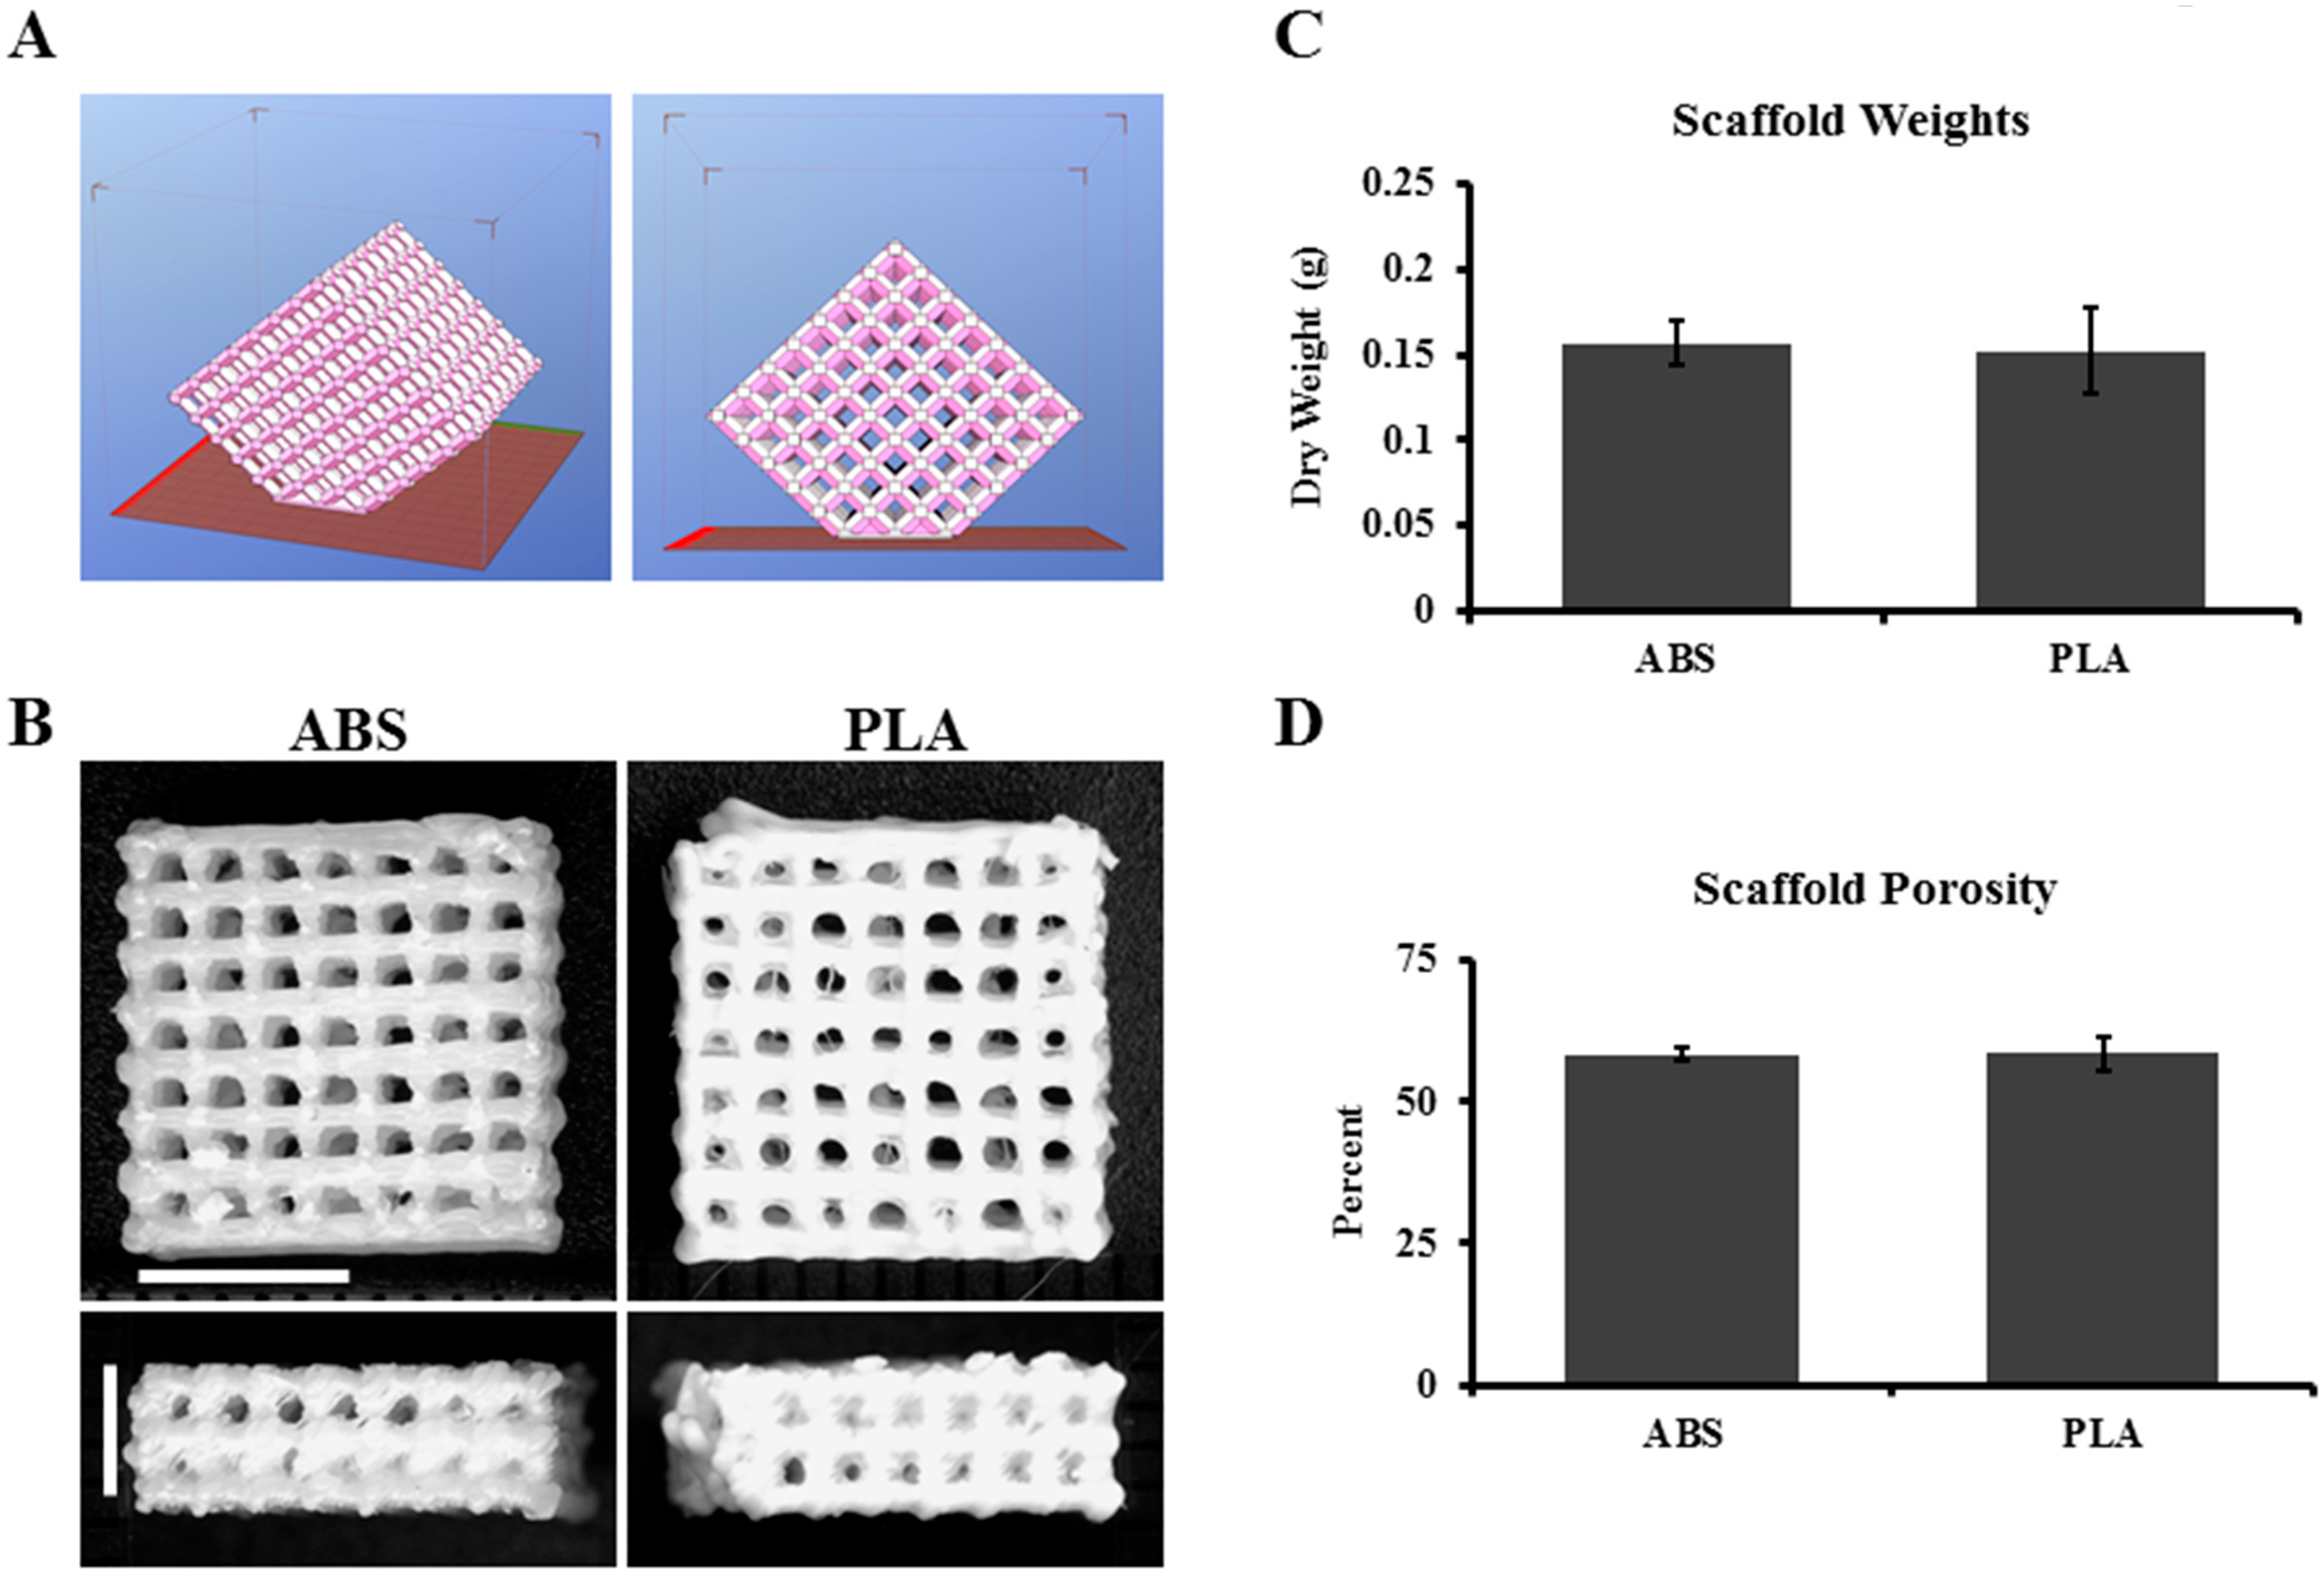 3d printing pla scaffolds for tissue regeneration applications